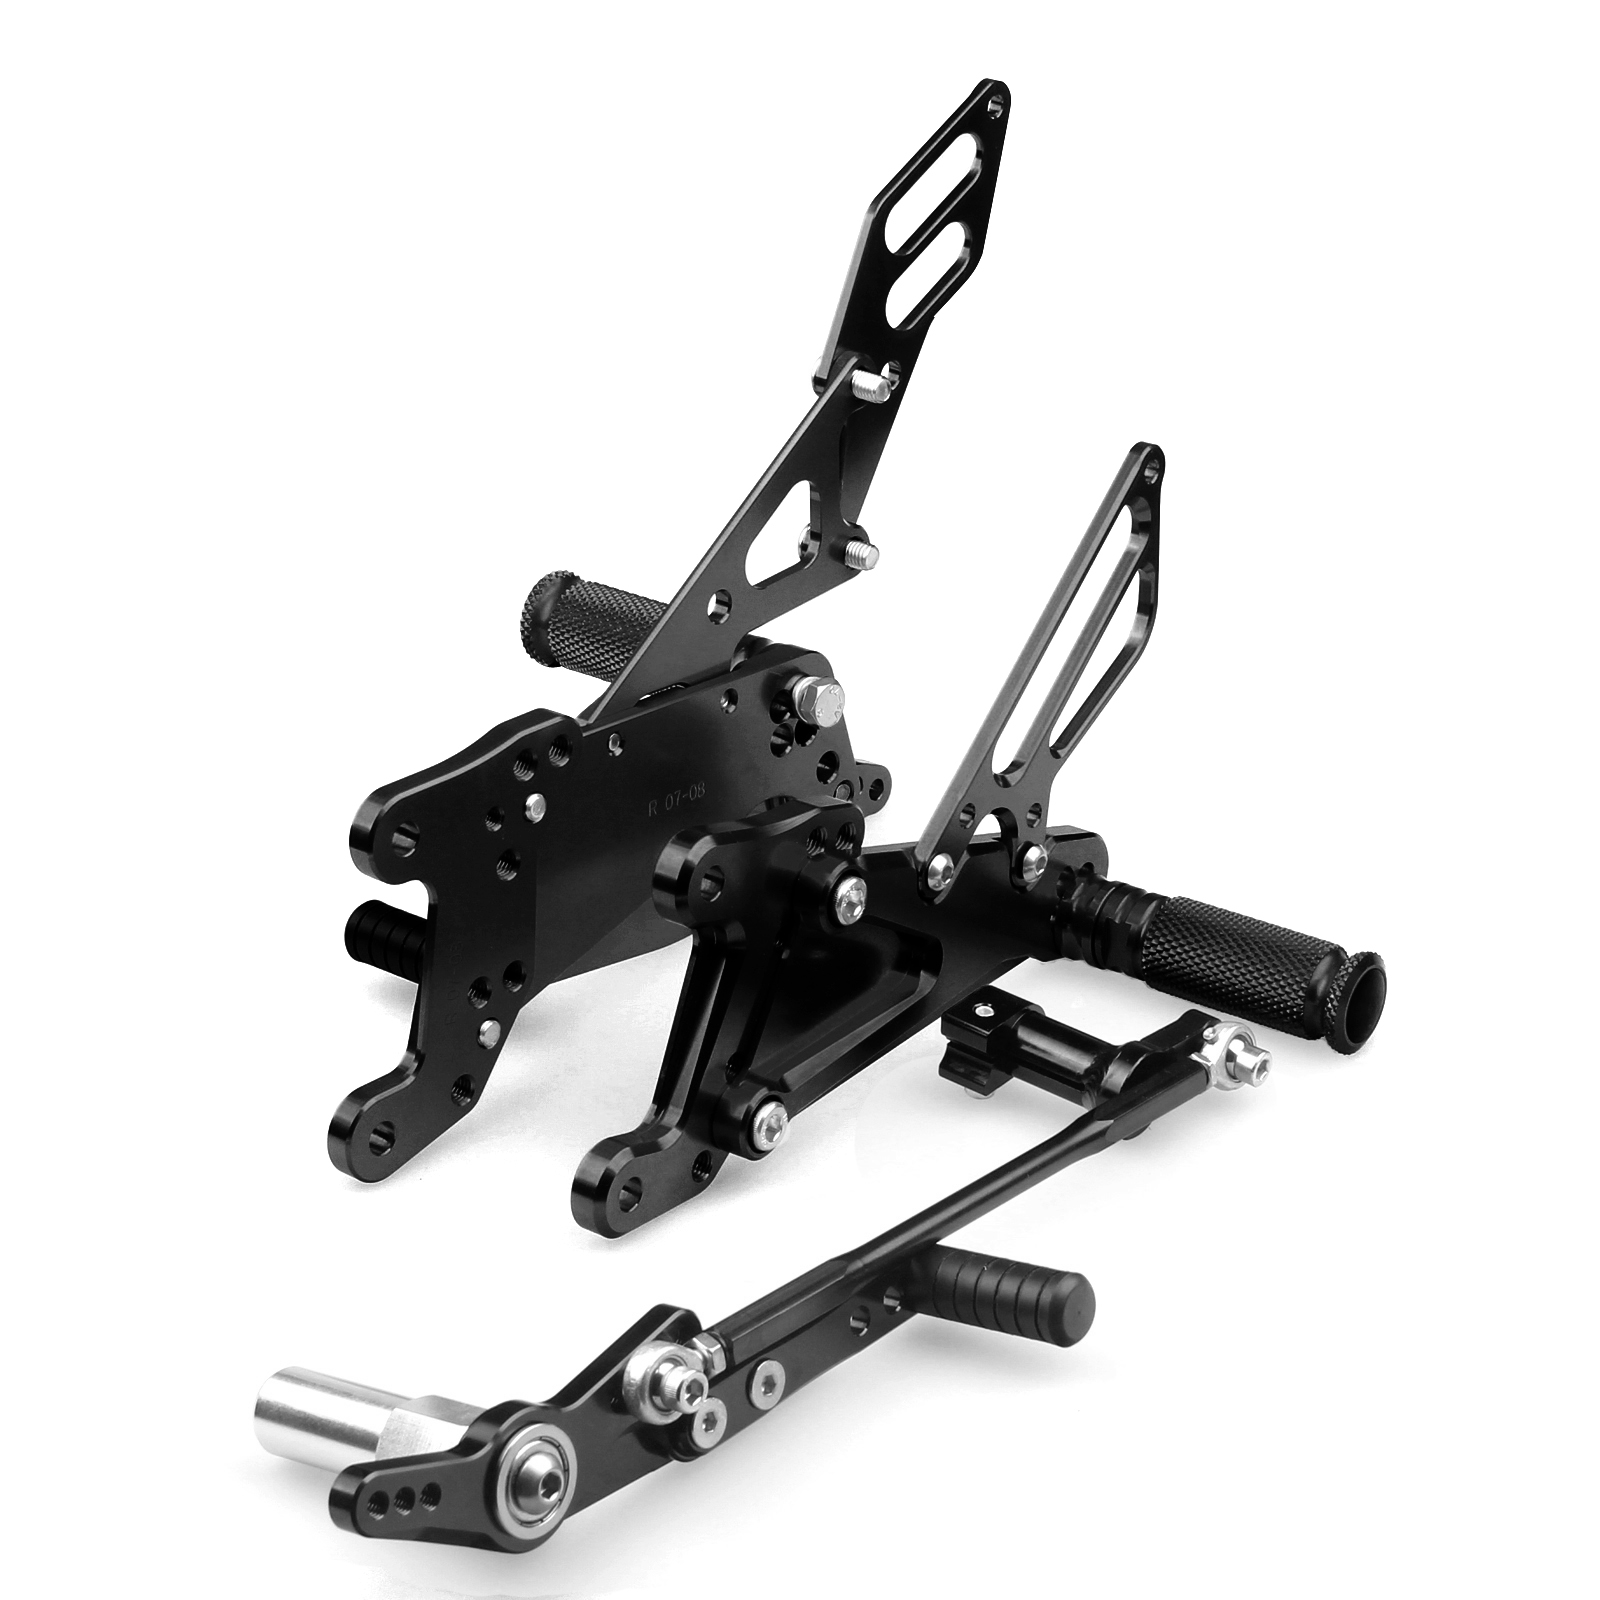 For Yamaha YZF R1 98-03 Rear Sets Foot Pegs Rests Rearsets Adjustable Footpegs